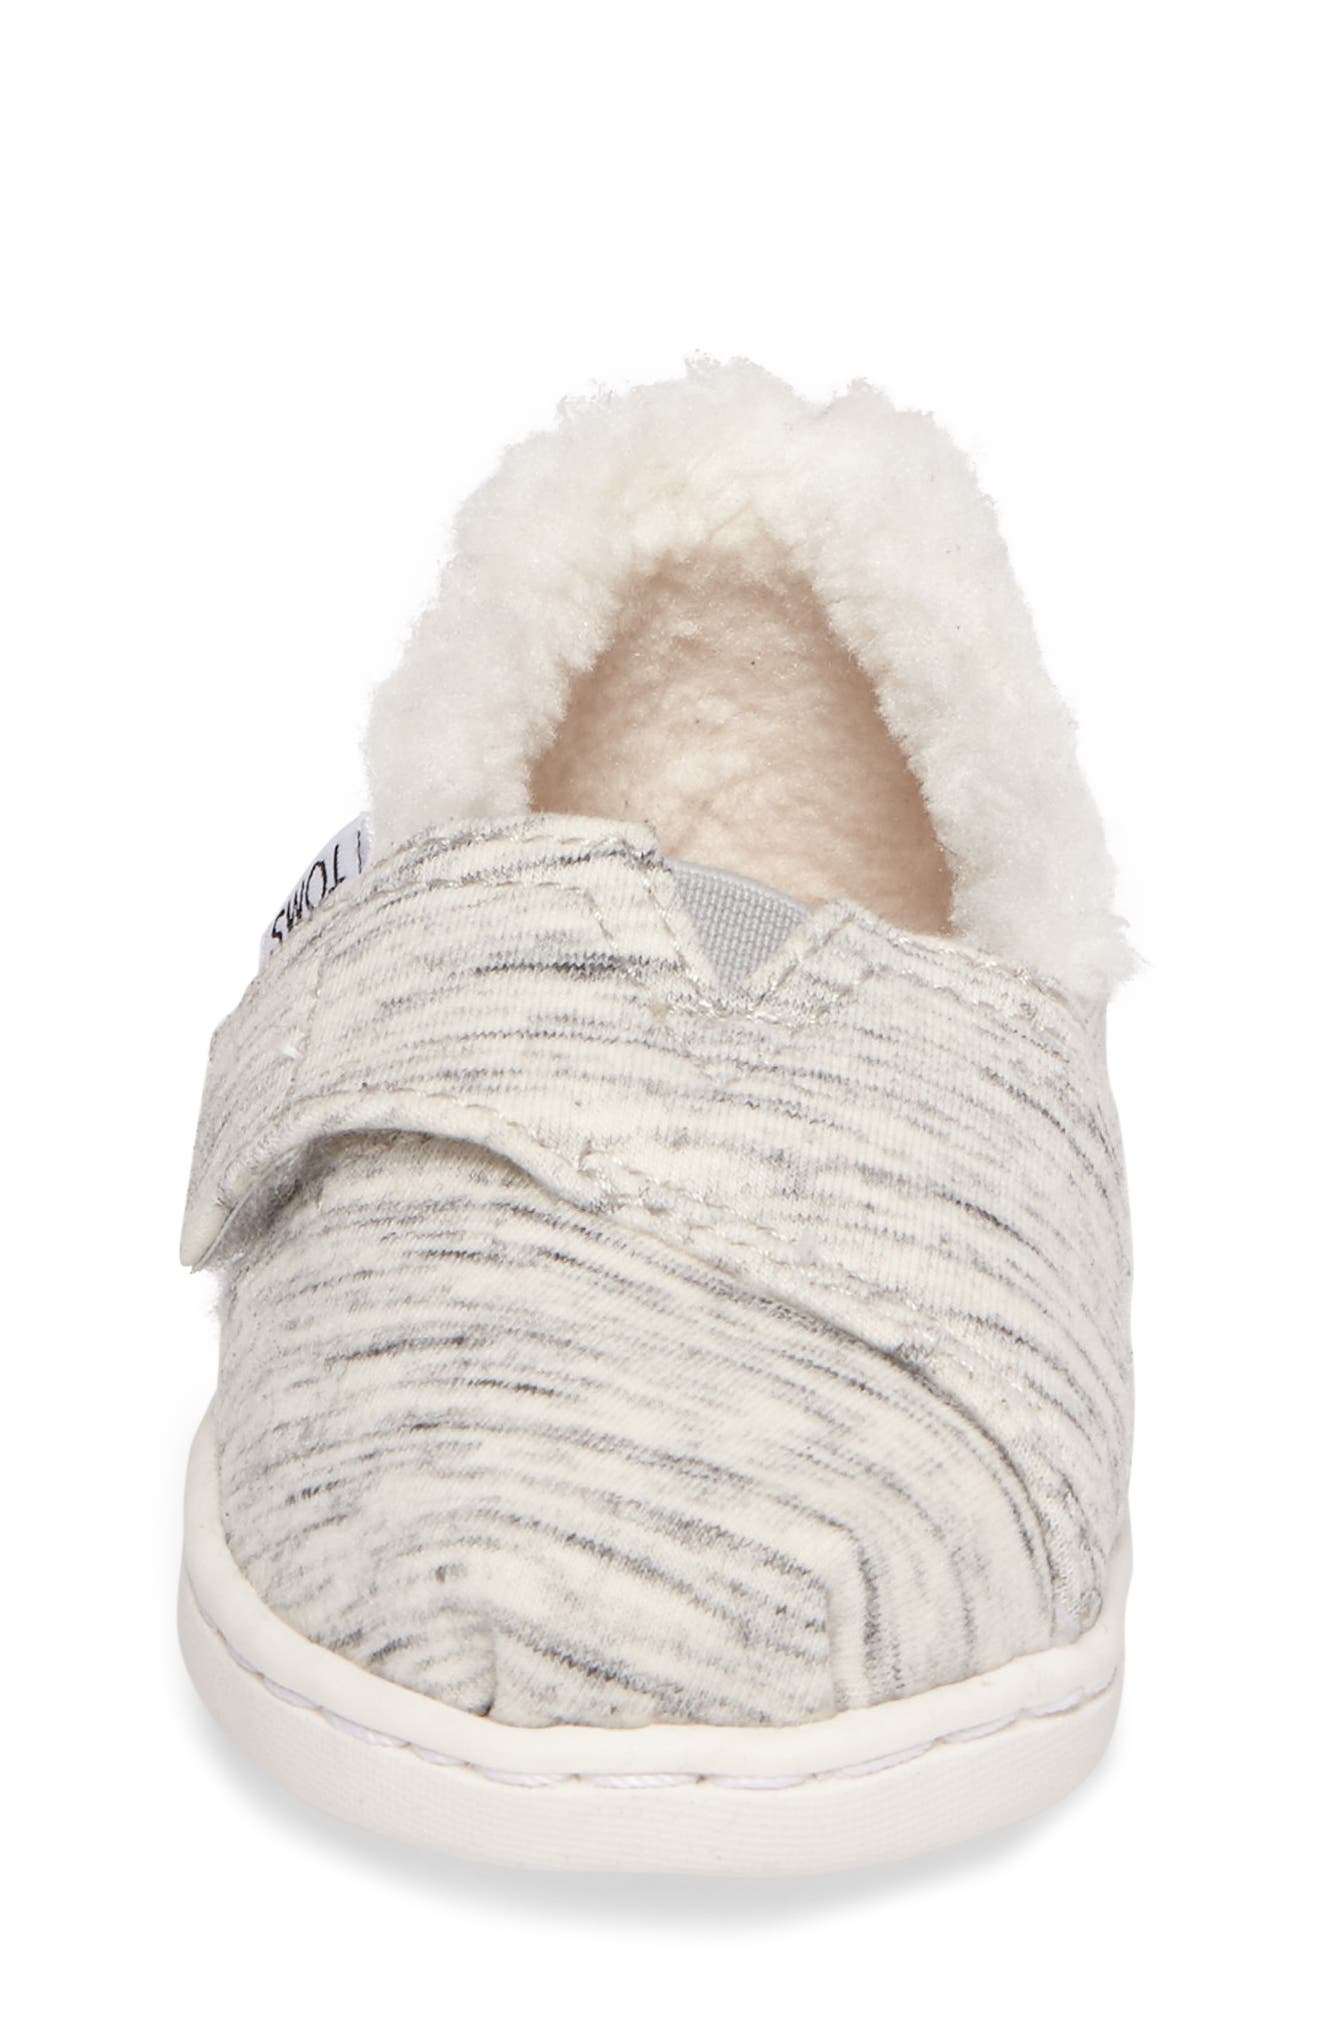 Classic - Tiny Herringbone Faux Shearling Lined Slip-On,                             Alternate thumbnail 4, color,                             BIRCH JERSEY/ FAUX SHEARLING